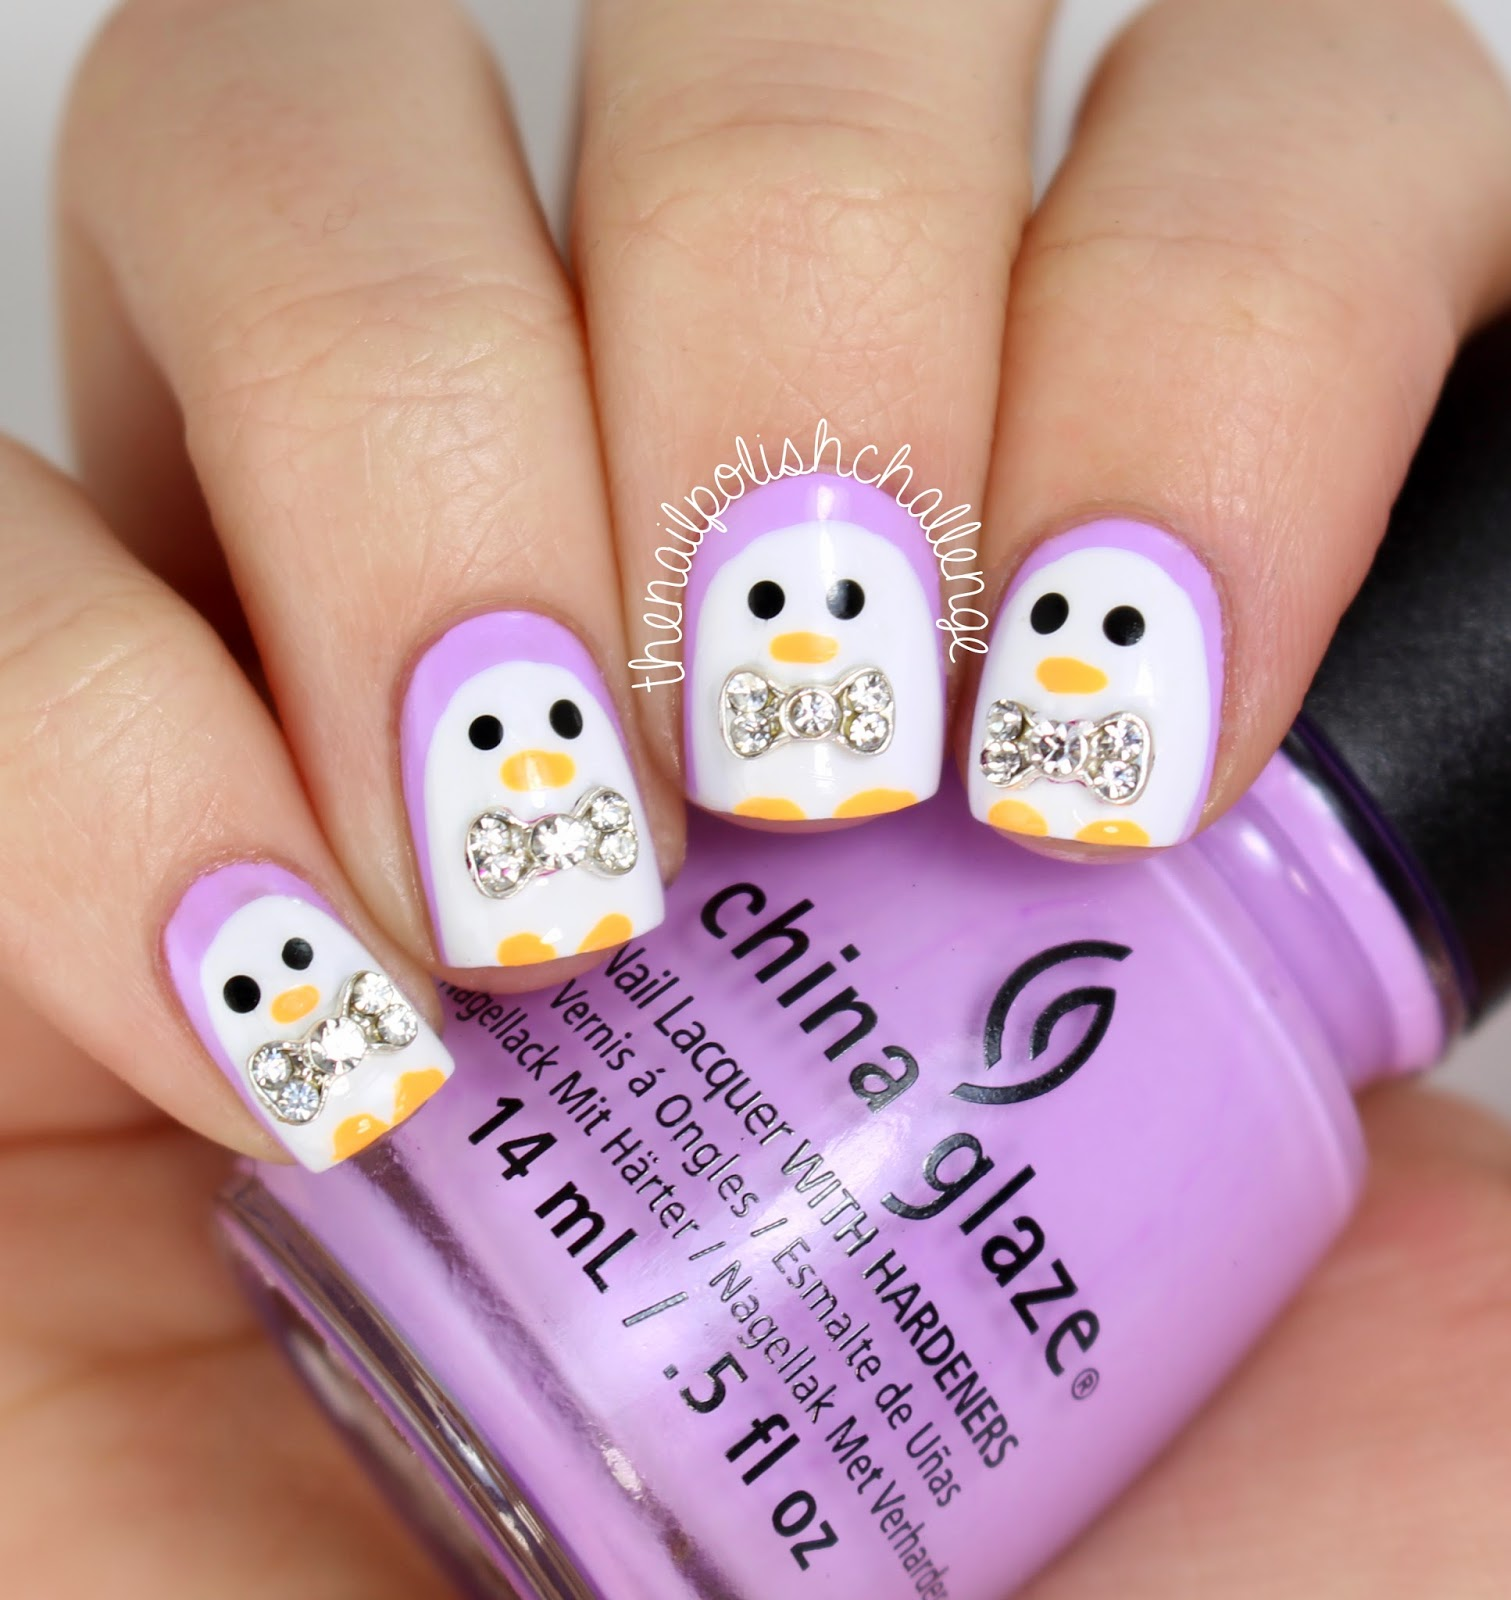 Kelli marissa cute penguin nail art with 3d bows i started with a base of china glaze lotus begin part of the new spring collection i got from hb beauty bar dont forget to use the code polishchallenge prinsesfo Image collections